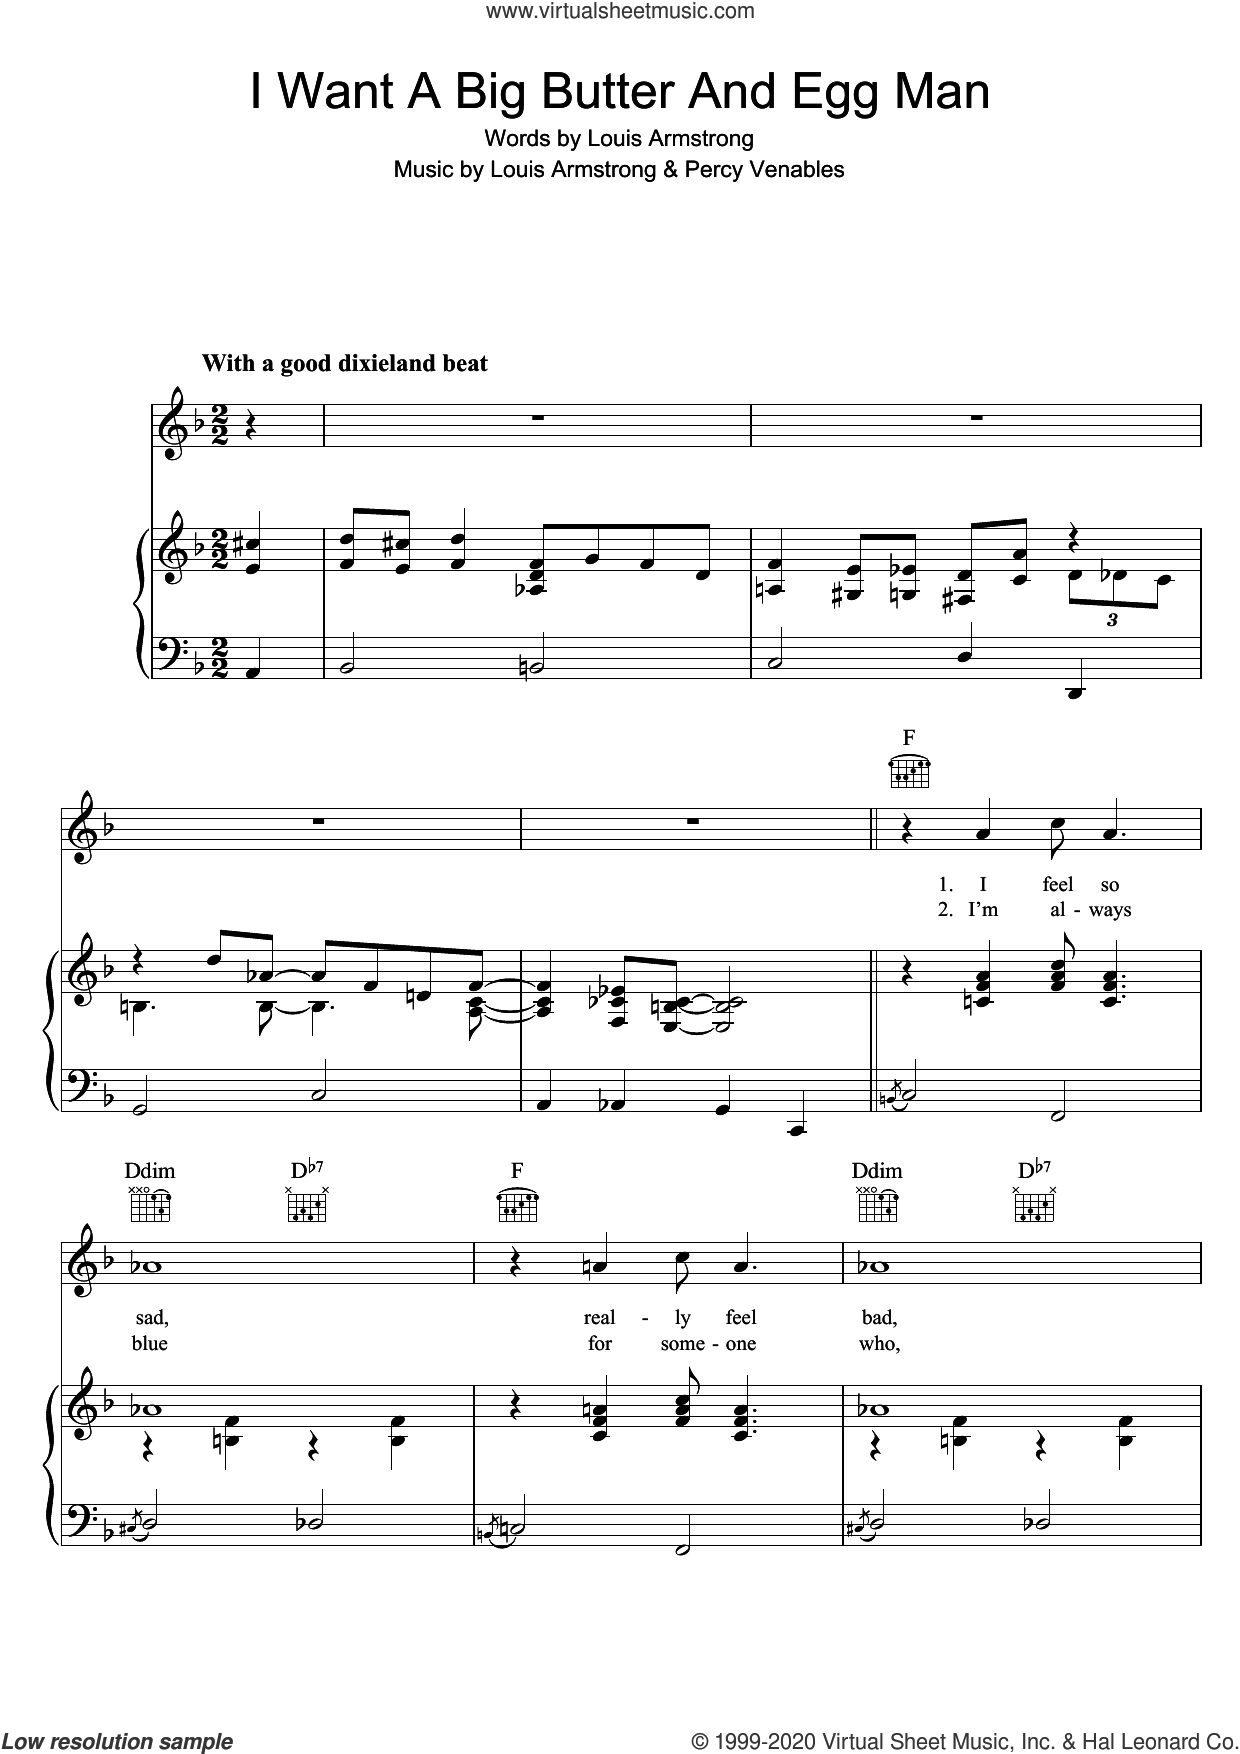 I Want A Big Butter And Egg Man sheet music for voice, piano or guitar by Louis Armstrong and Percy Venables, intermediate skill level